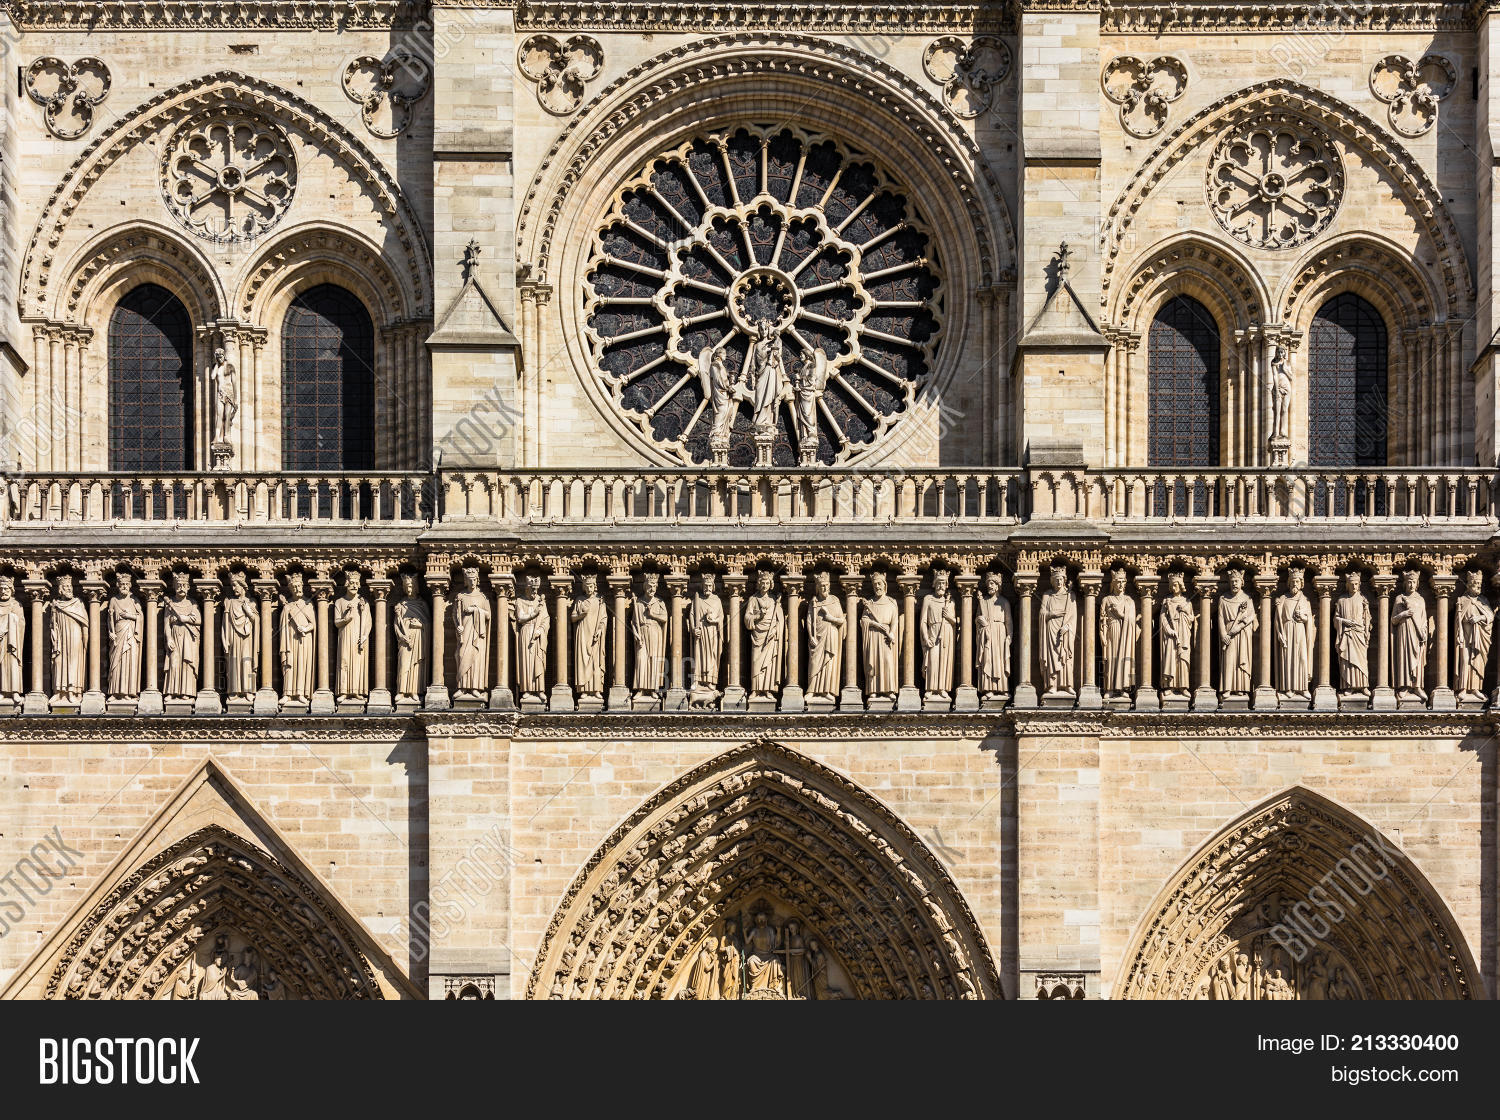 Architectural Details Of The Catholic Cathedral Notre Dame De Paris Built In French Gothic Architecture